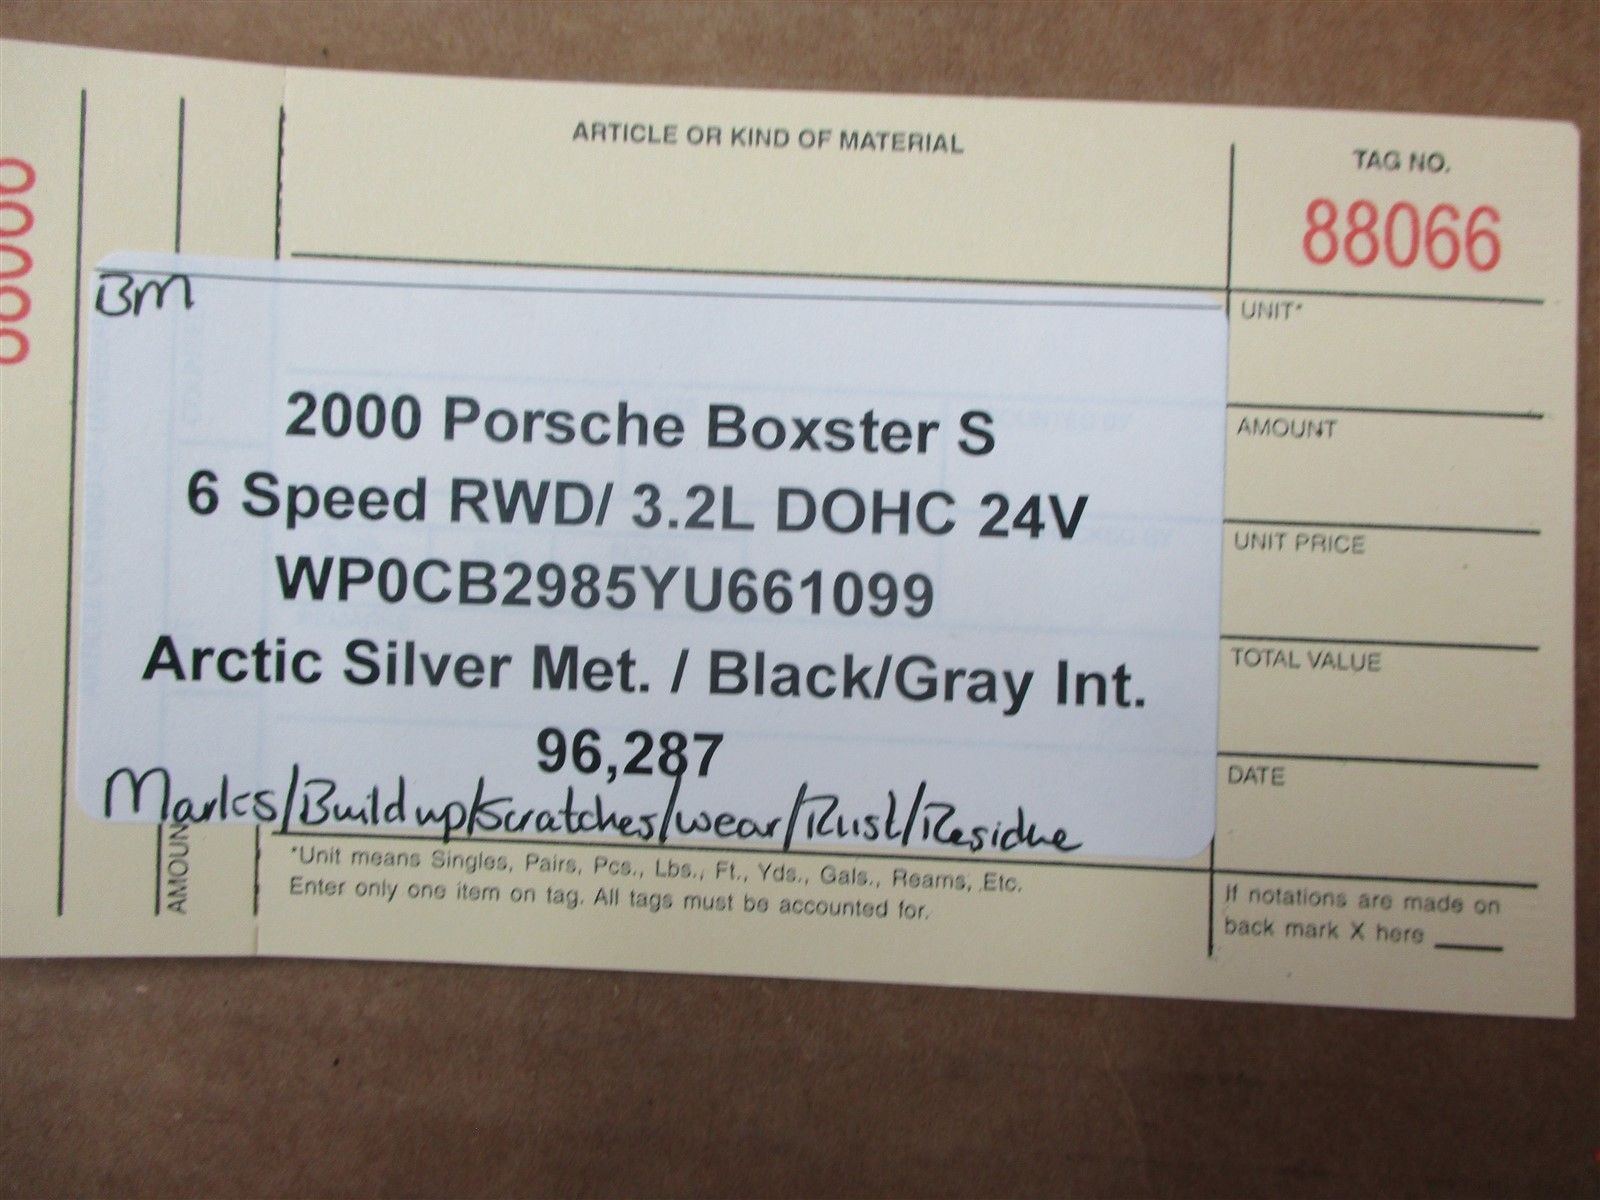 00 Boxster S RWD Porsche 986 PINION POWER STEERING RACK 99634701106 96,287